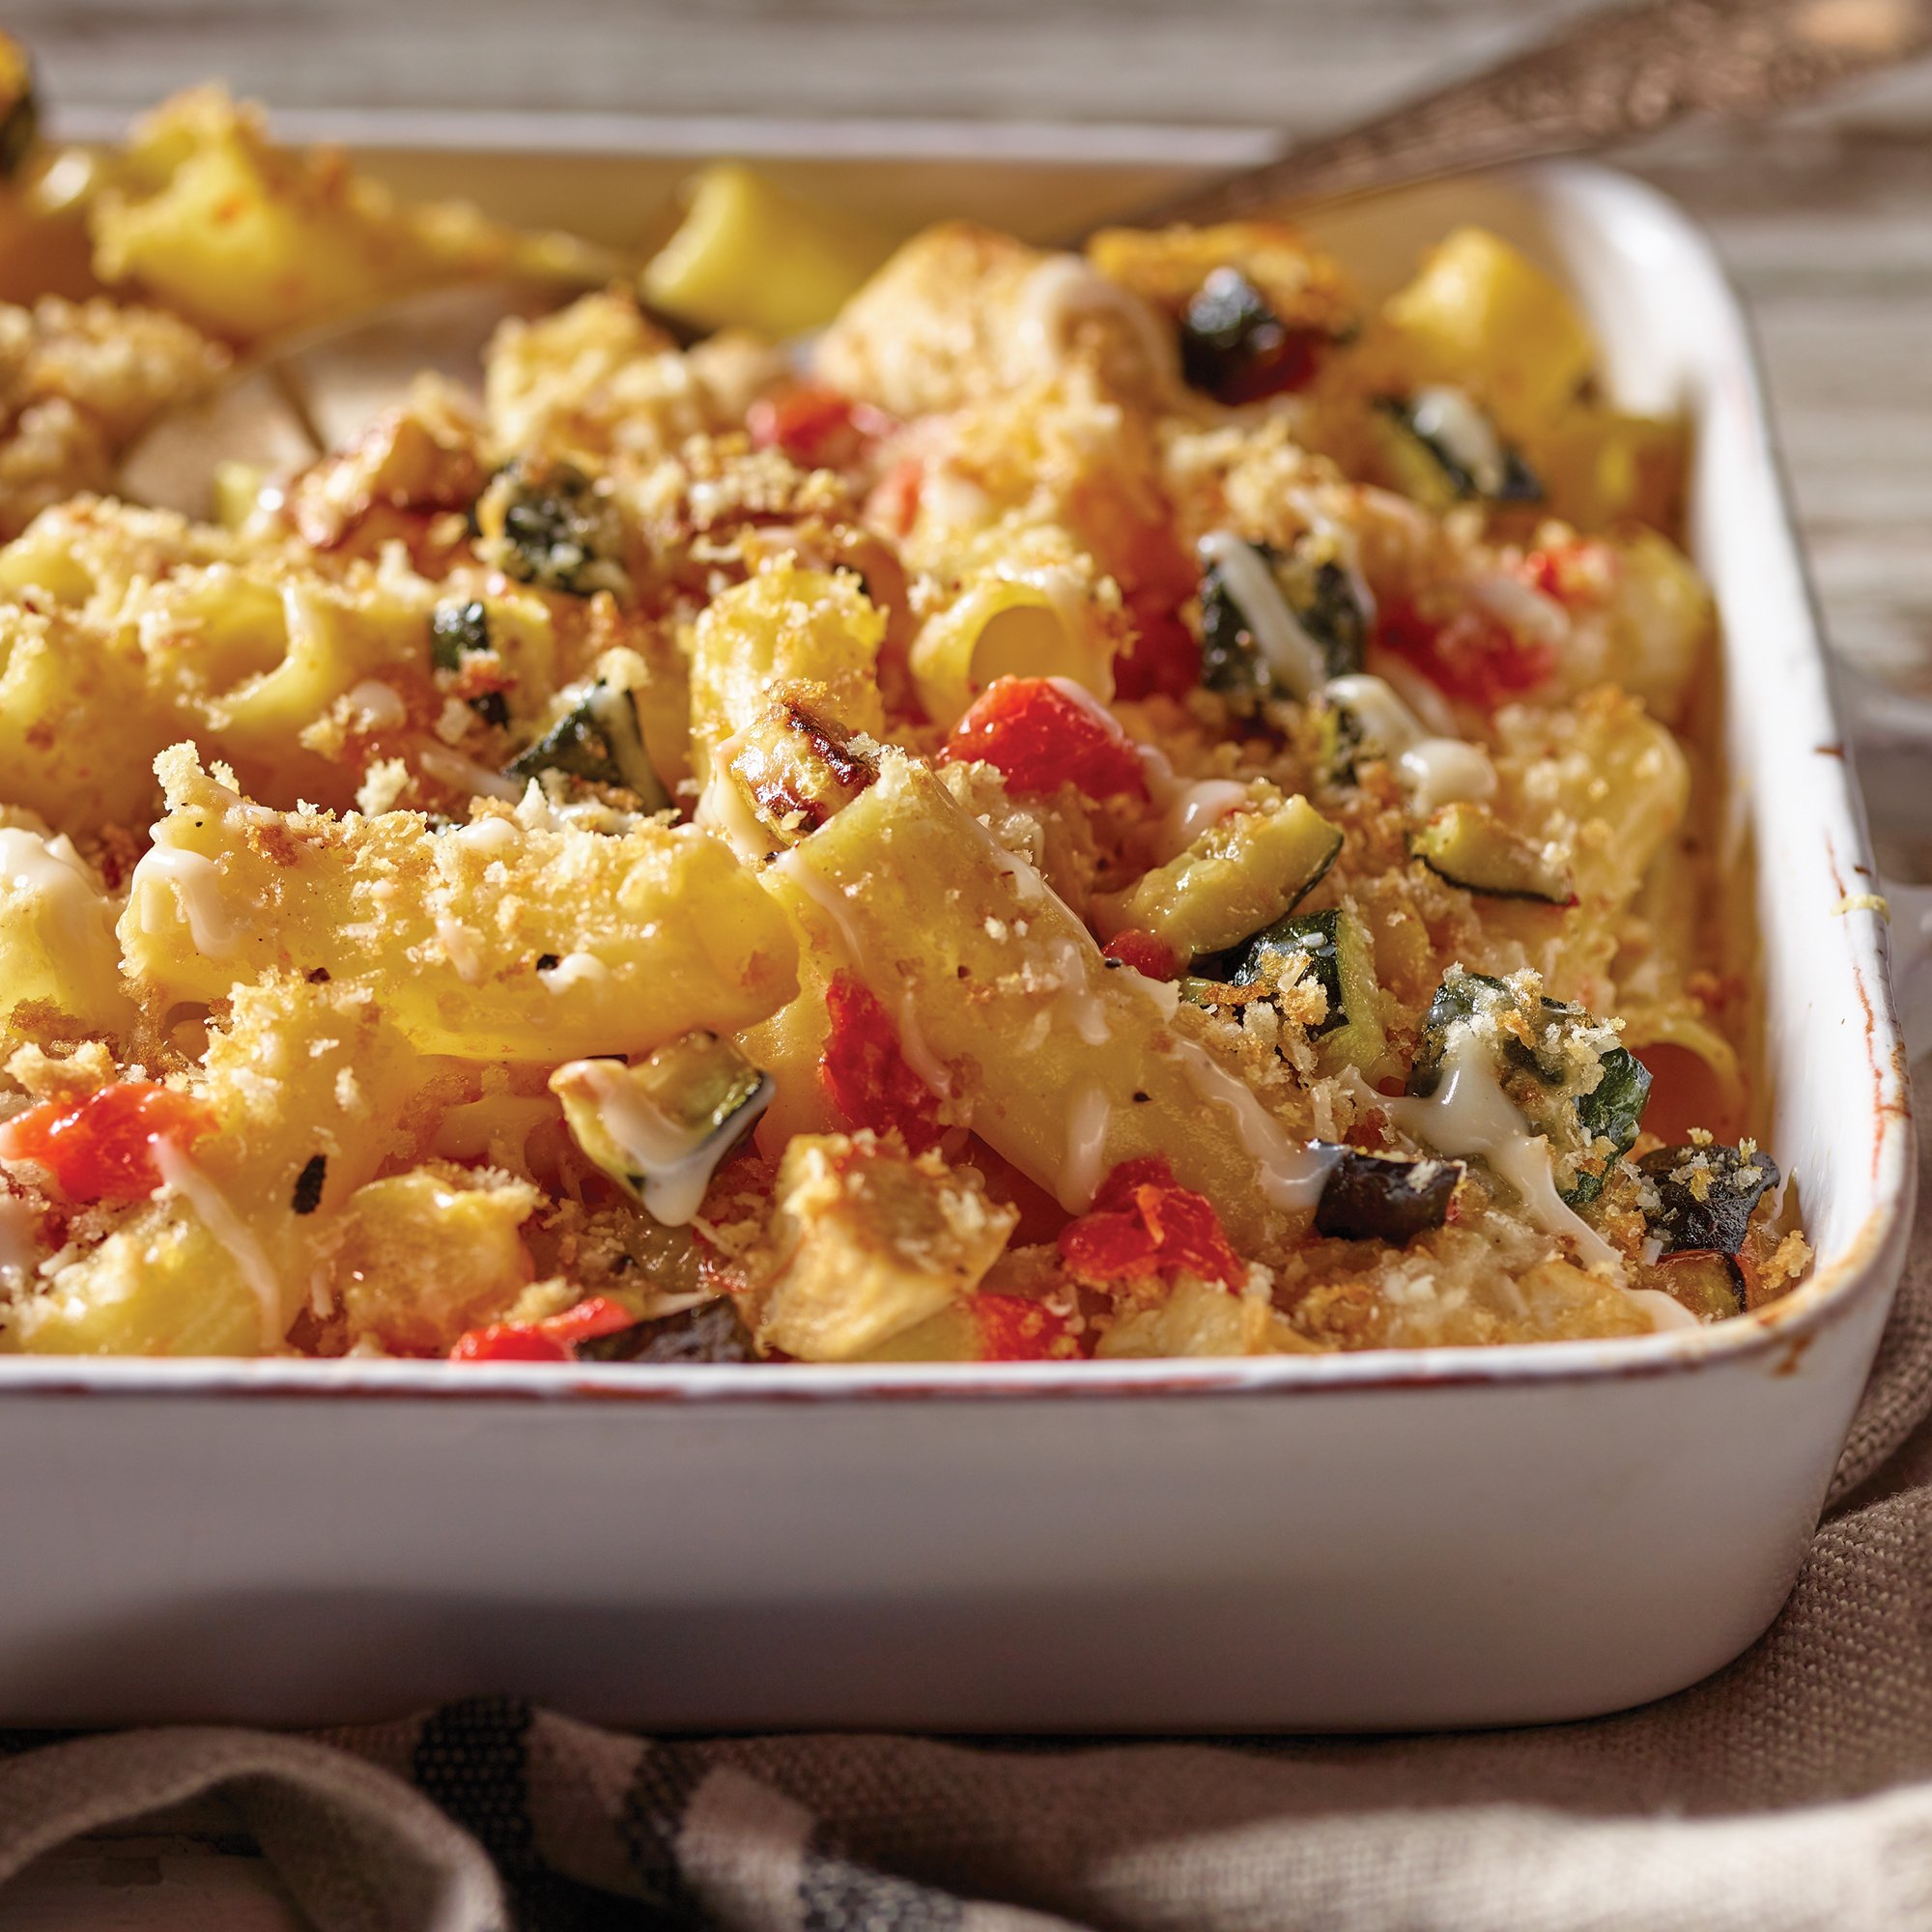 Roasted Vegetable And Chicken Alfredo Pasta Bake Recipe From H E B